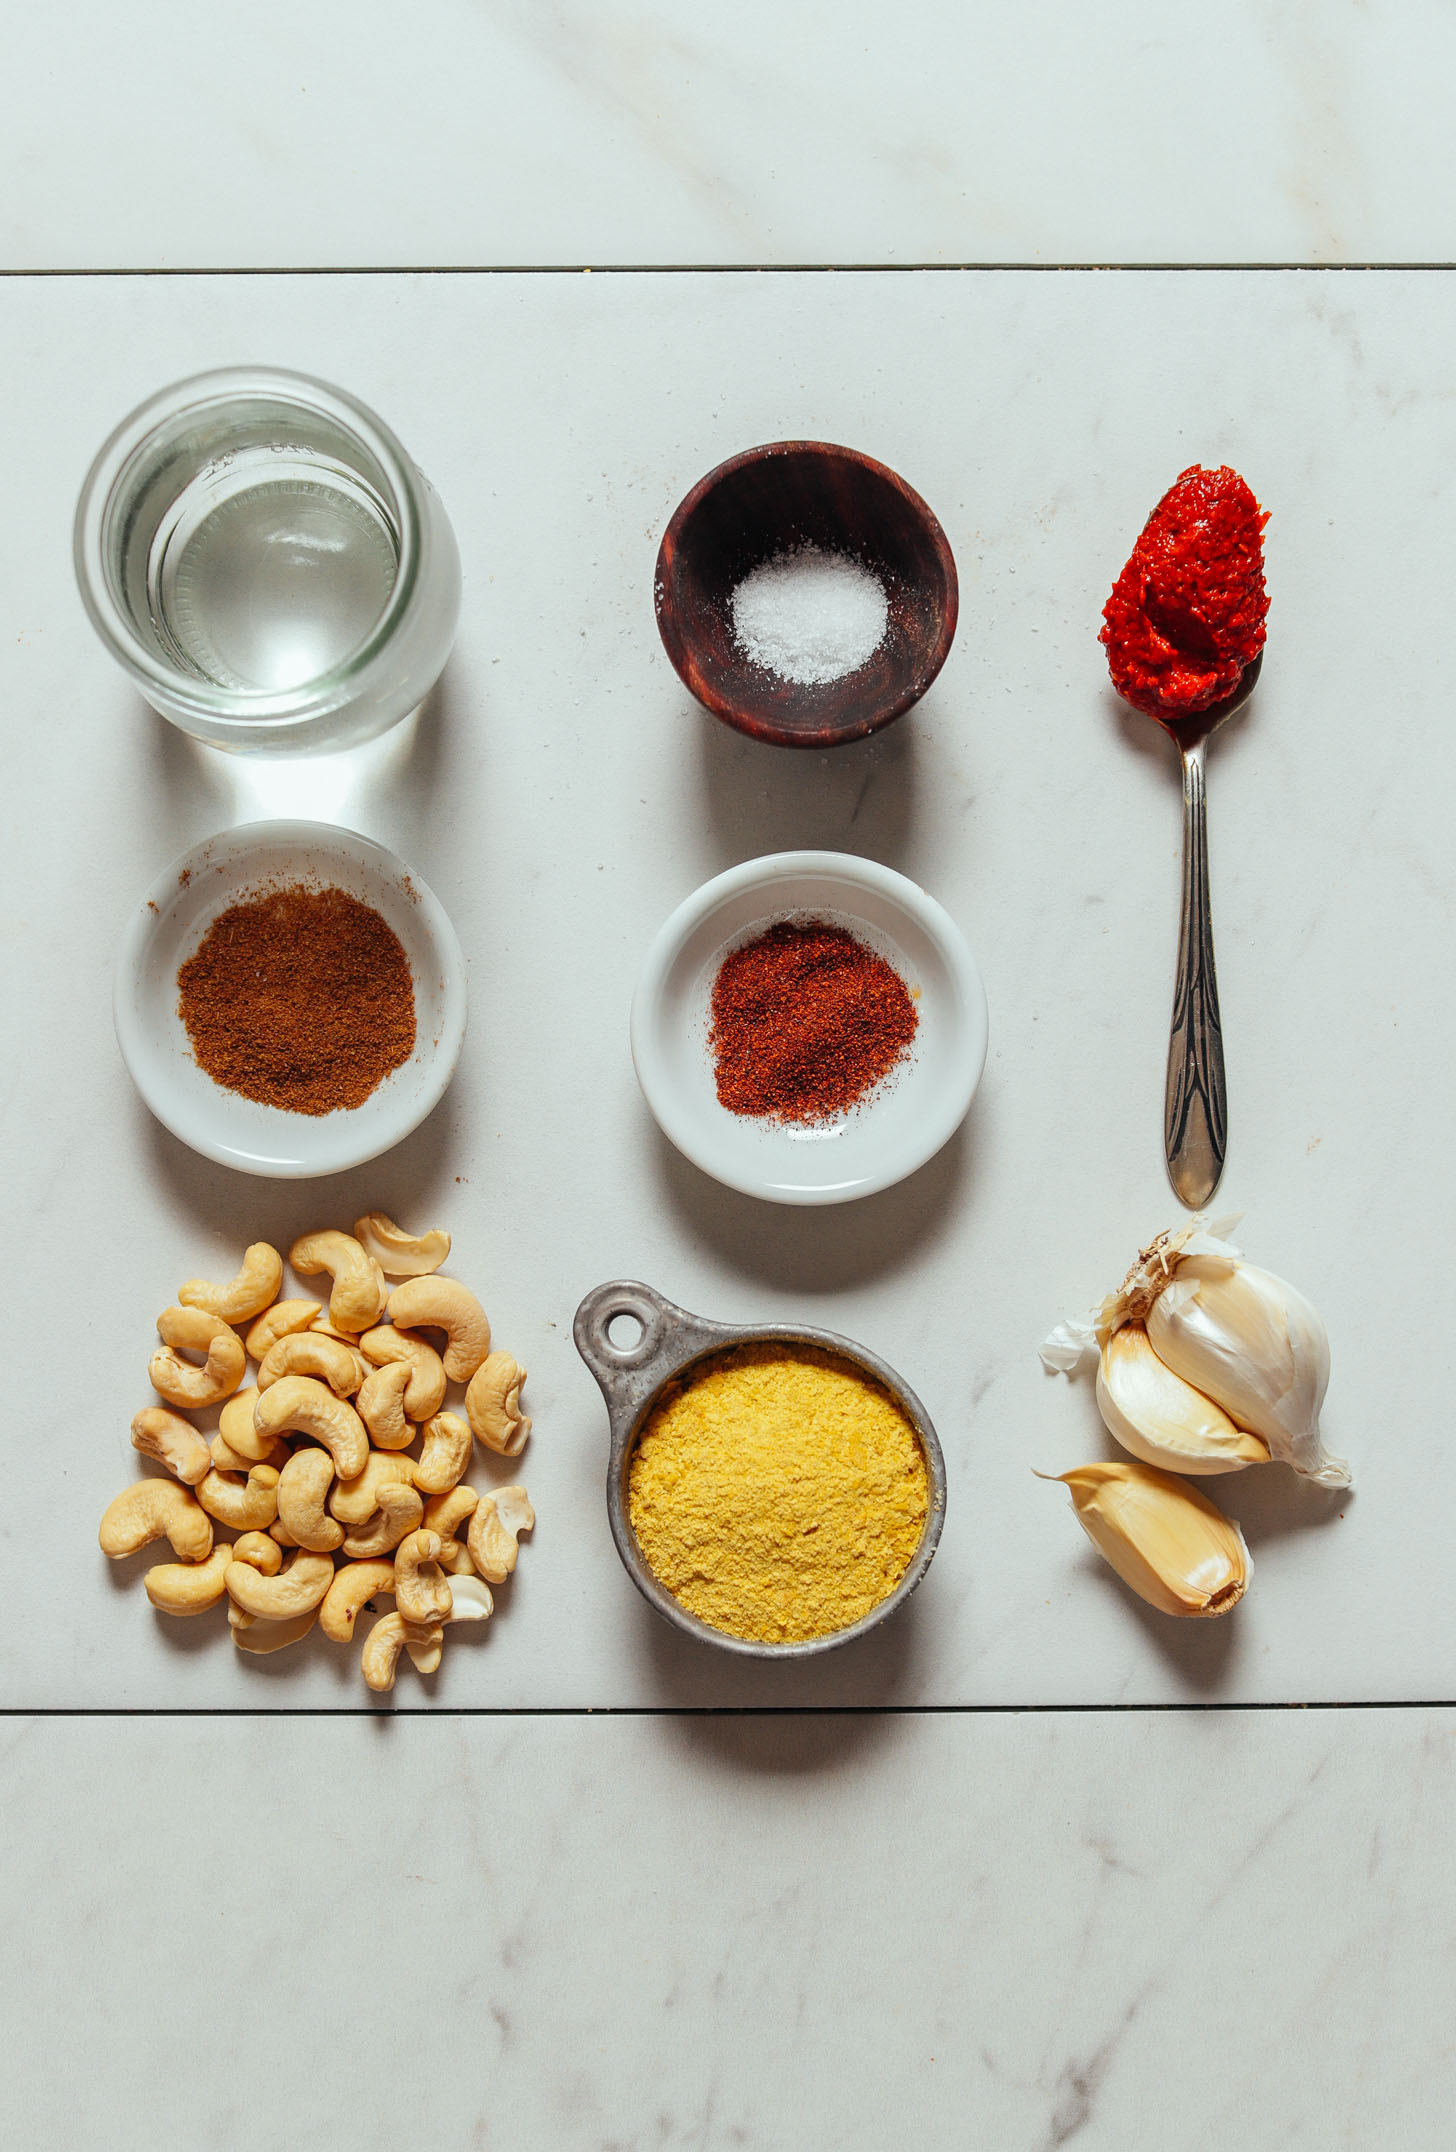 Overhead image of vegan cashew queso ingredients in a grid, including cashews, harissa, water, salt, and garlic